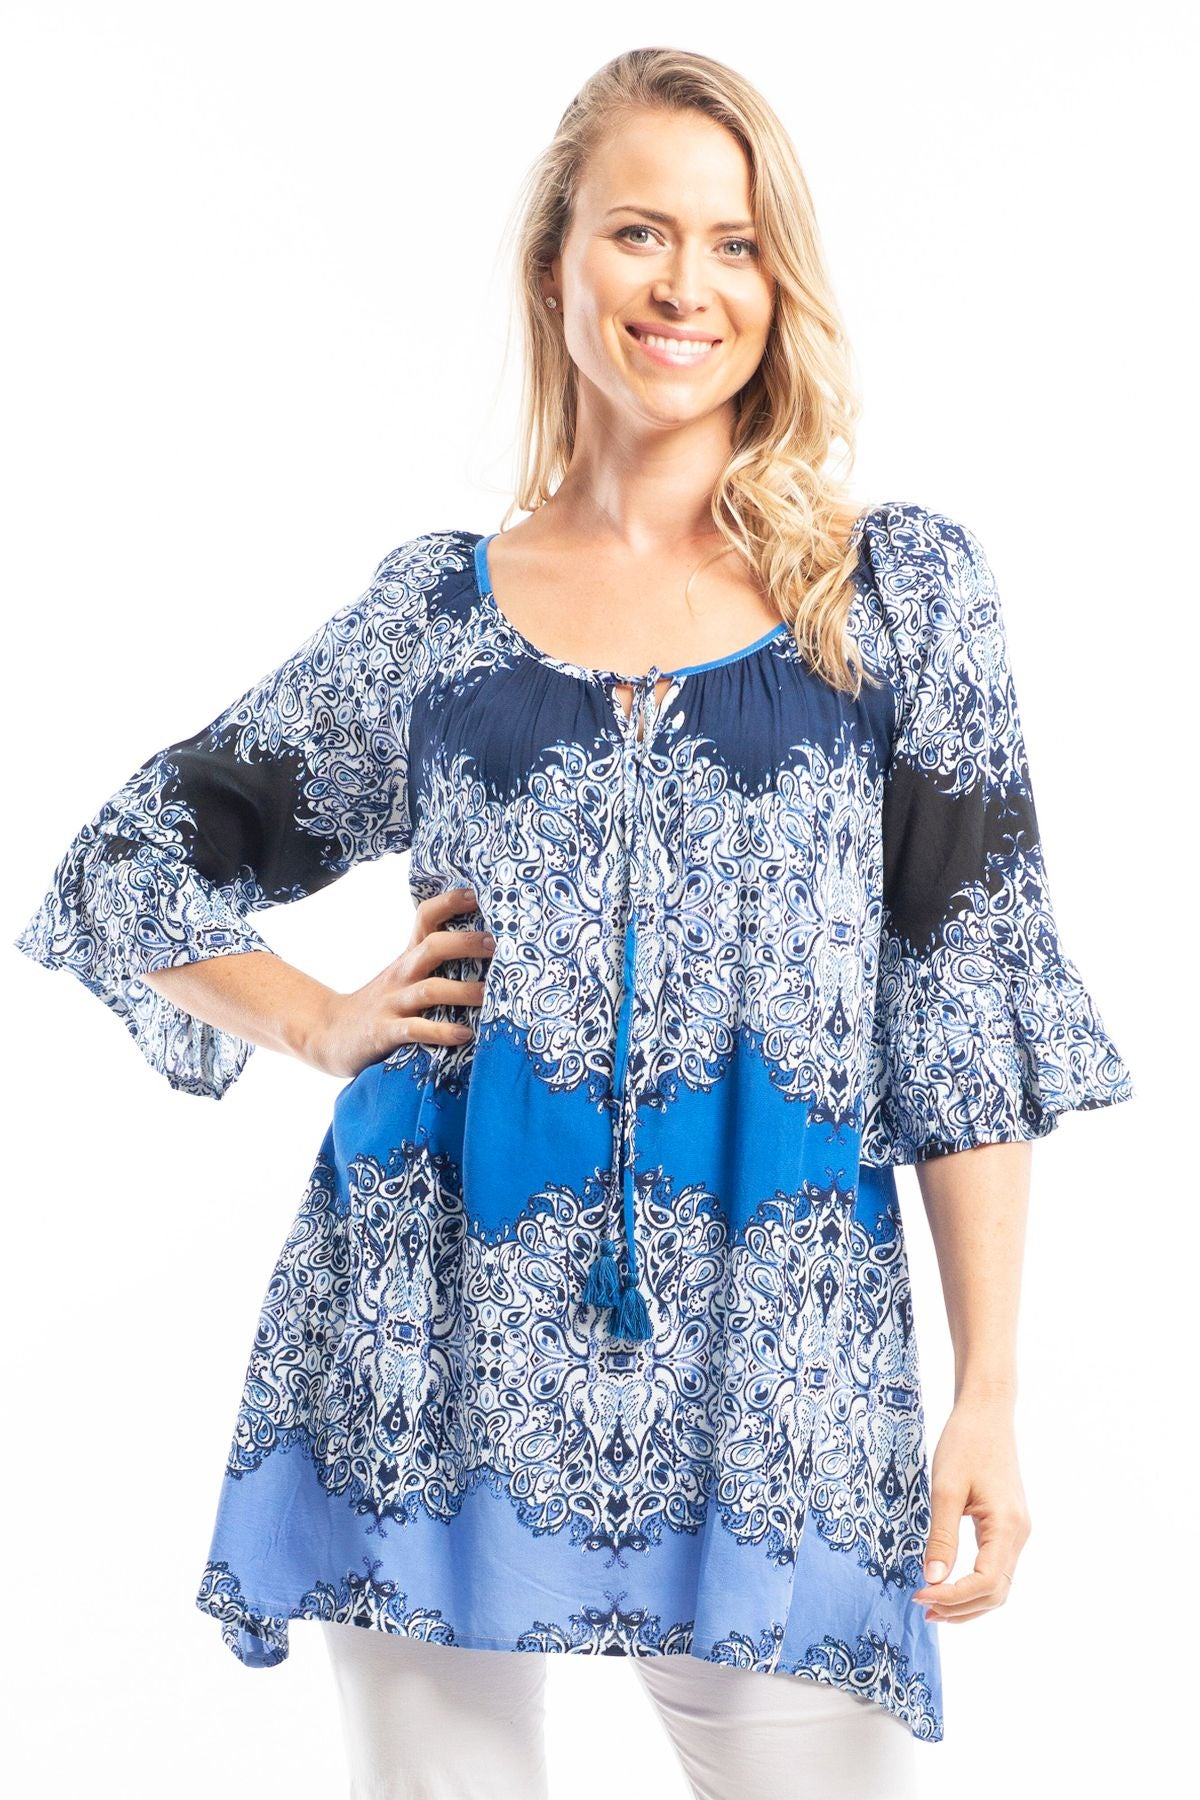 Easy Fit Ocean Wave Tunic Top | I Love Tunics | Tunic Tops | Tunic | Tunic Dresses  | womens clothing online